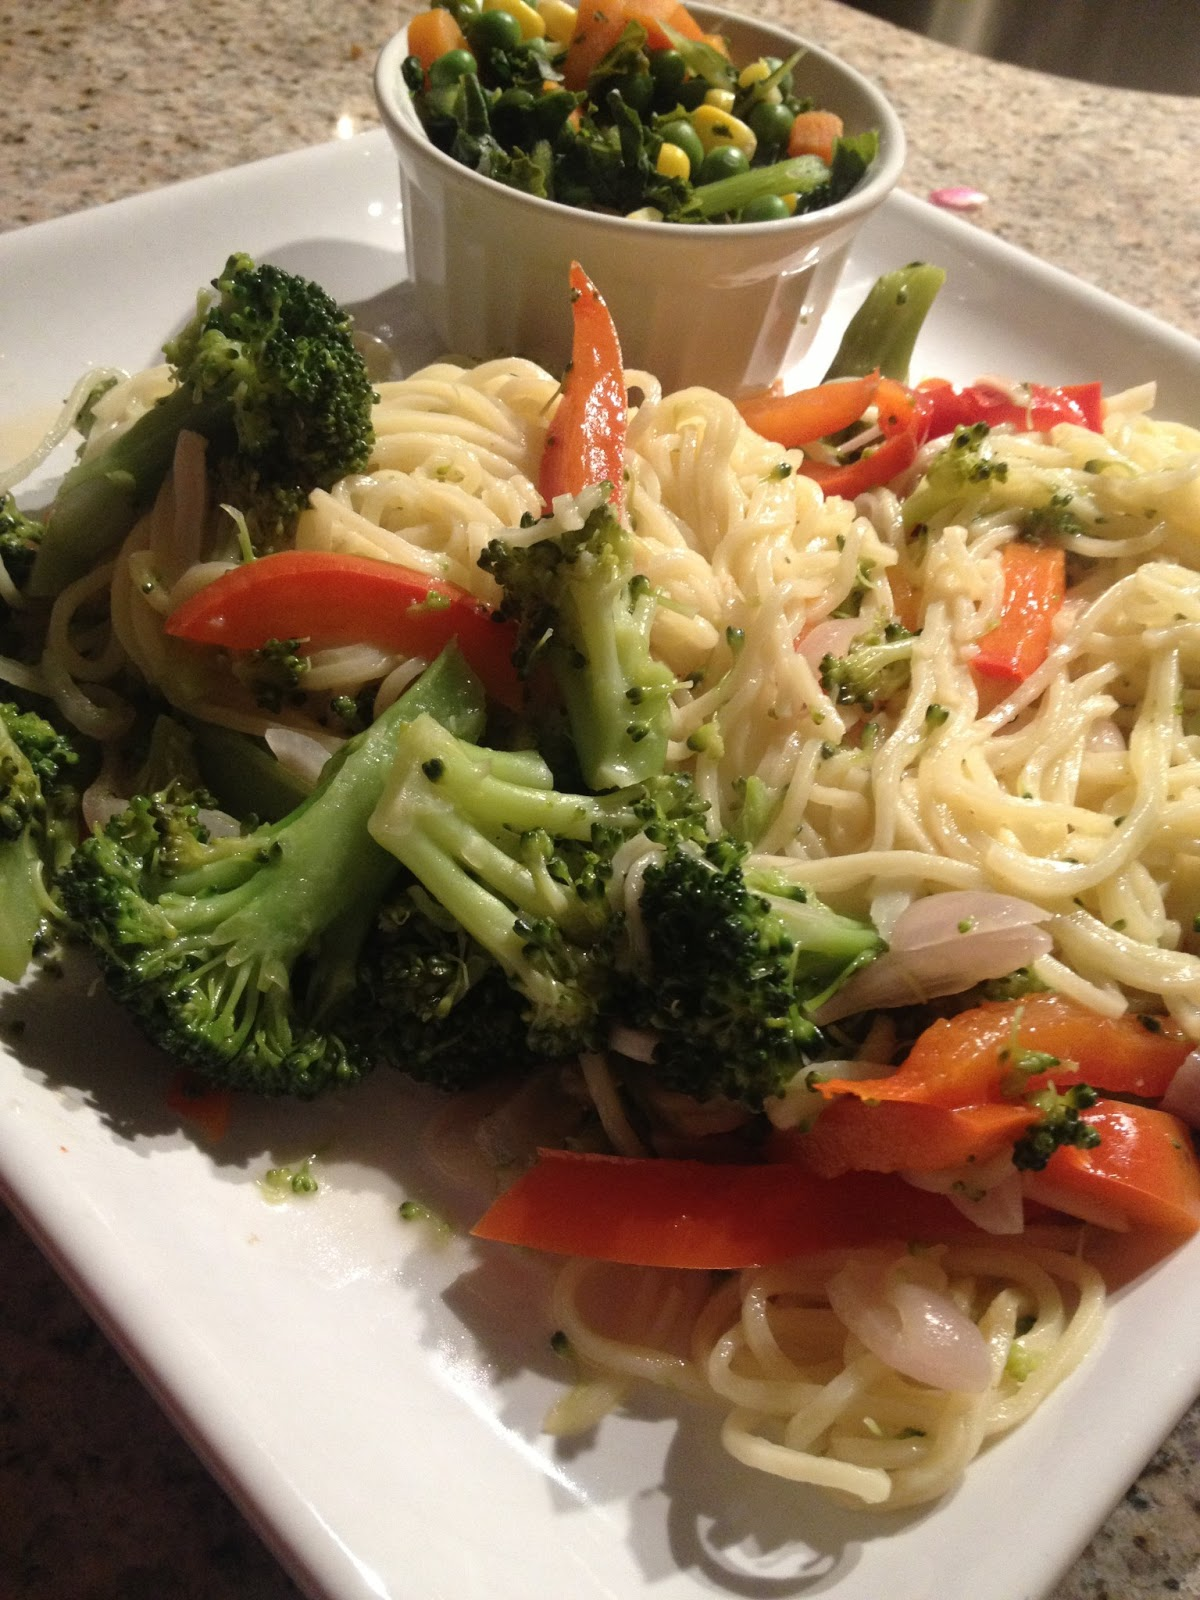 ... : Broccolini & Red Bell Pepper with Fresh Pasta & Brown Butter Sauce